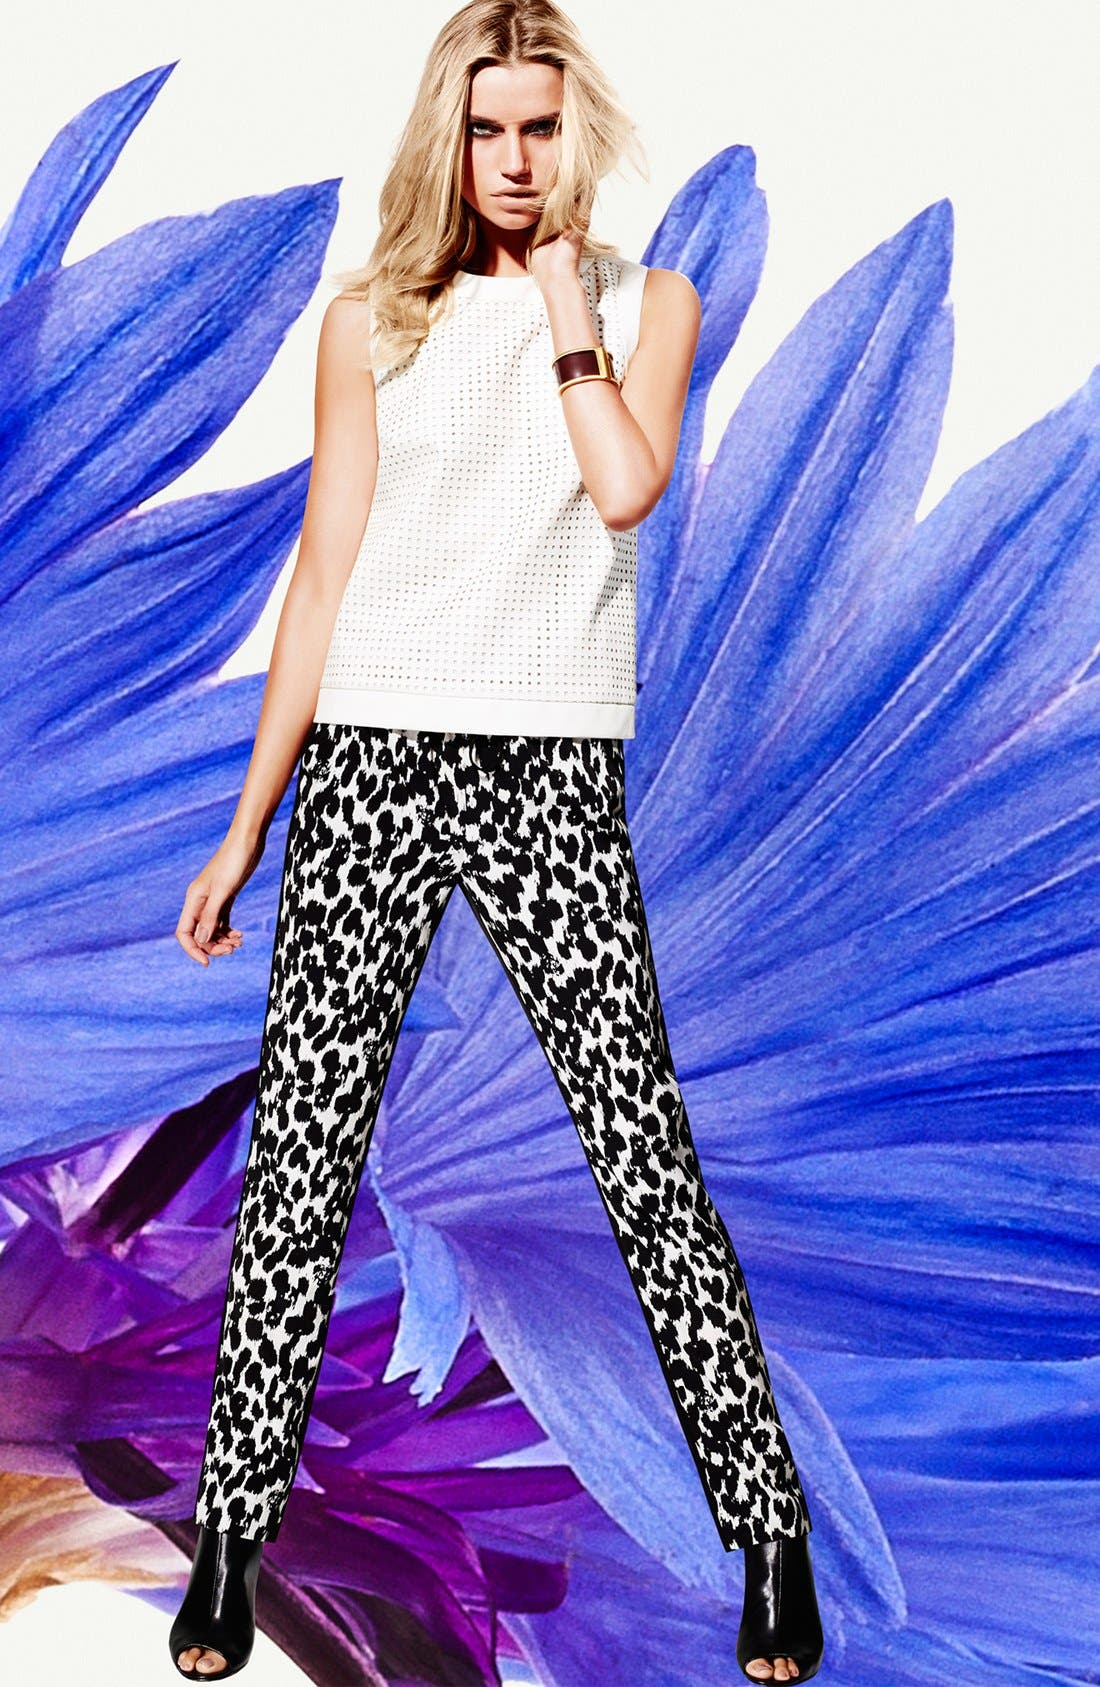 Main Image - Vince Camuto Top, Pants & Accessories